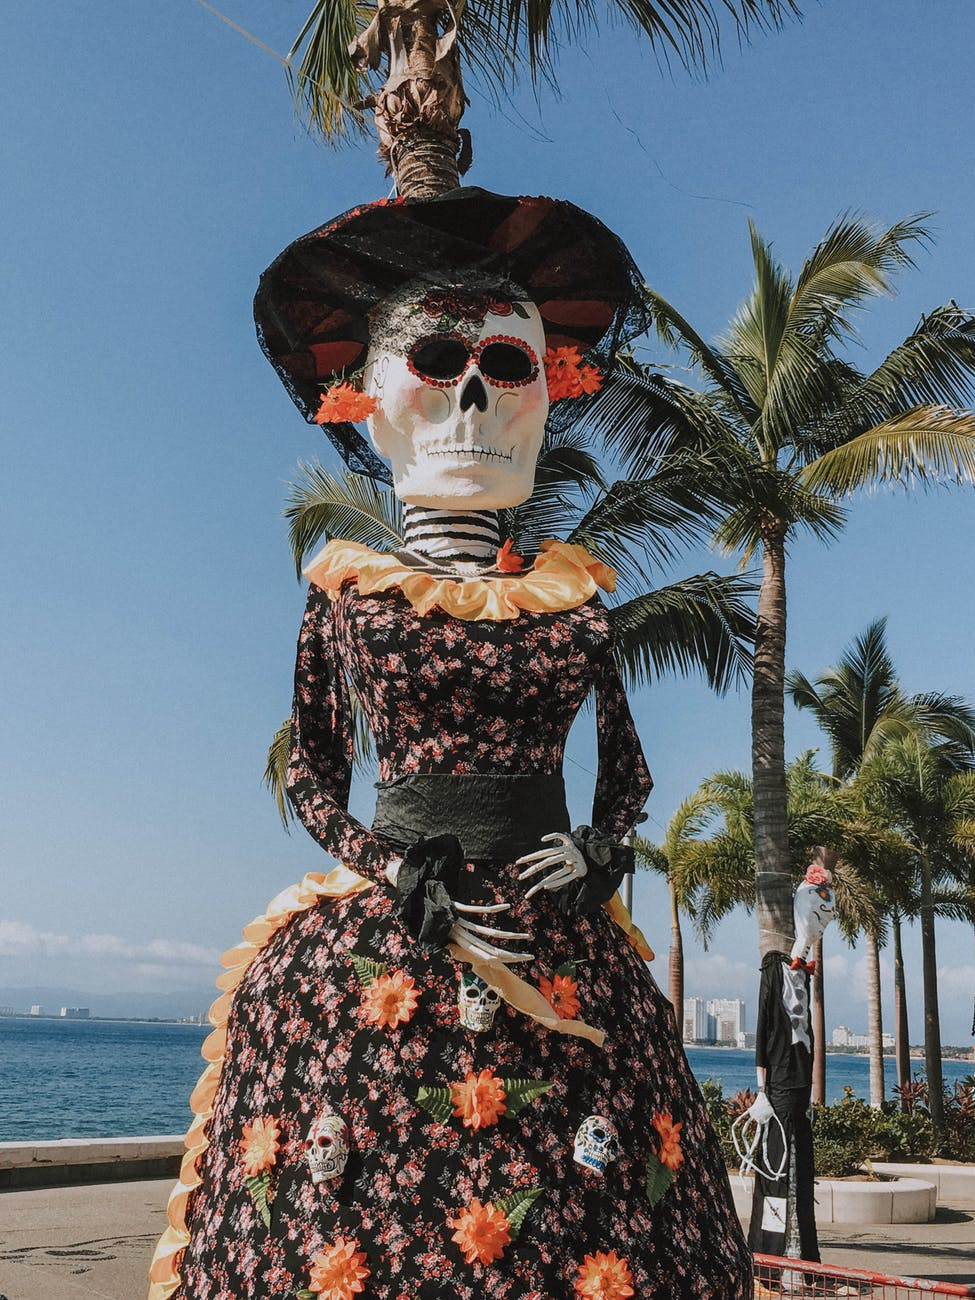 photo of skeleton wearing floral dress